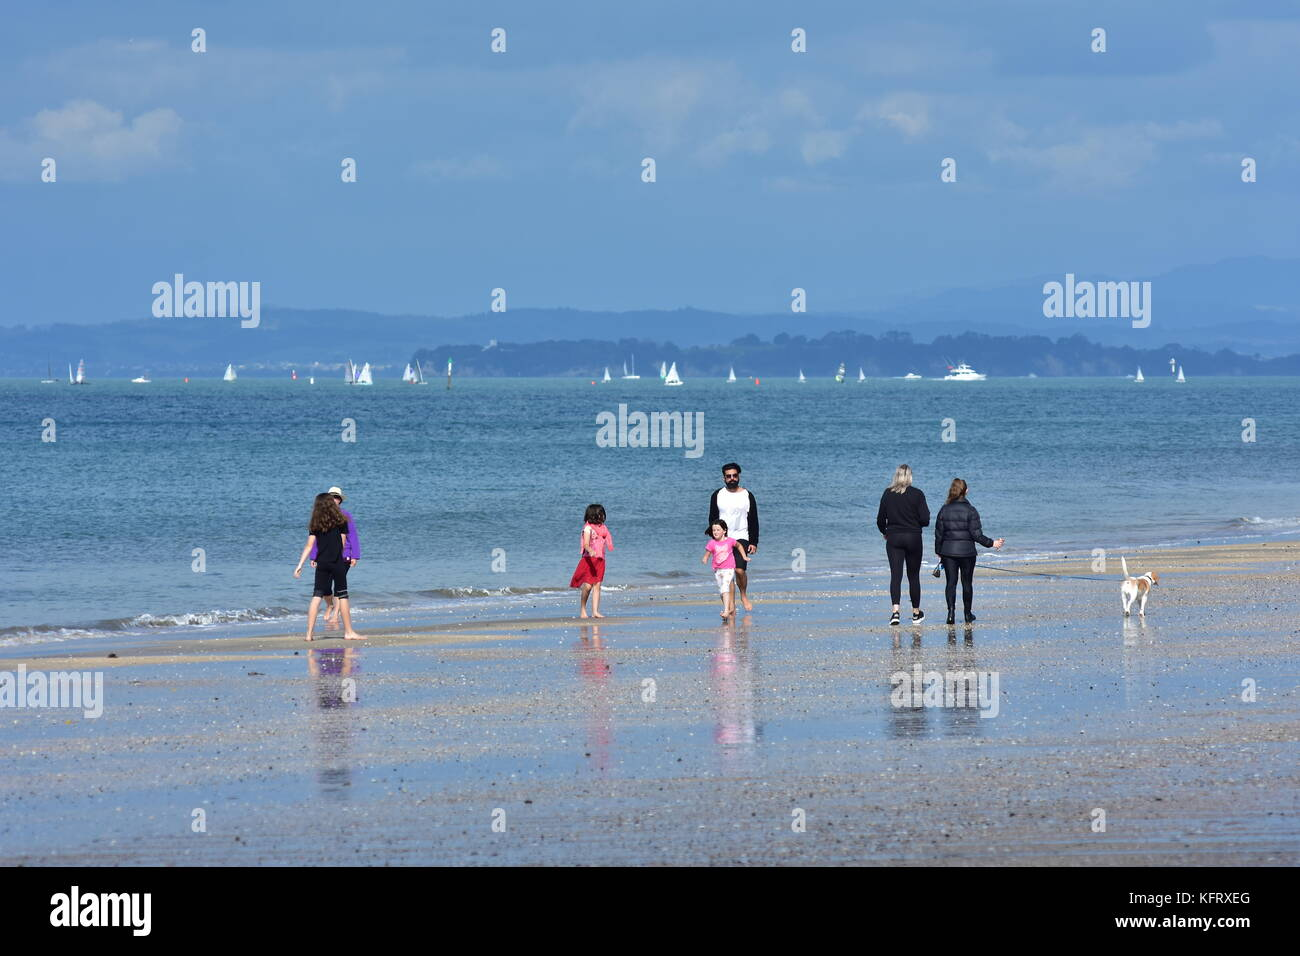 People walking on flat sandy ocean beach of Takapuna in Auckland on cloudy day. - Stock Image